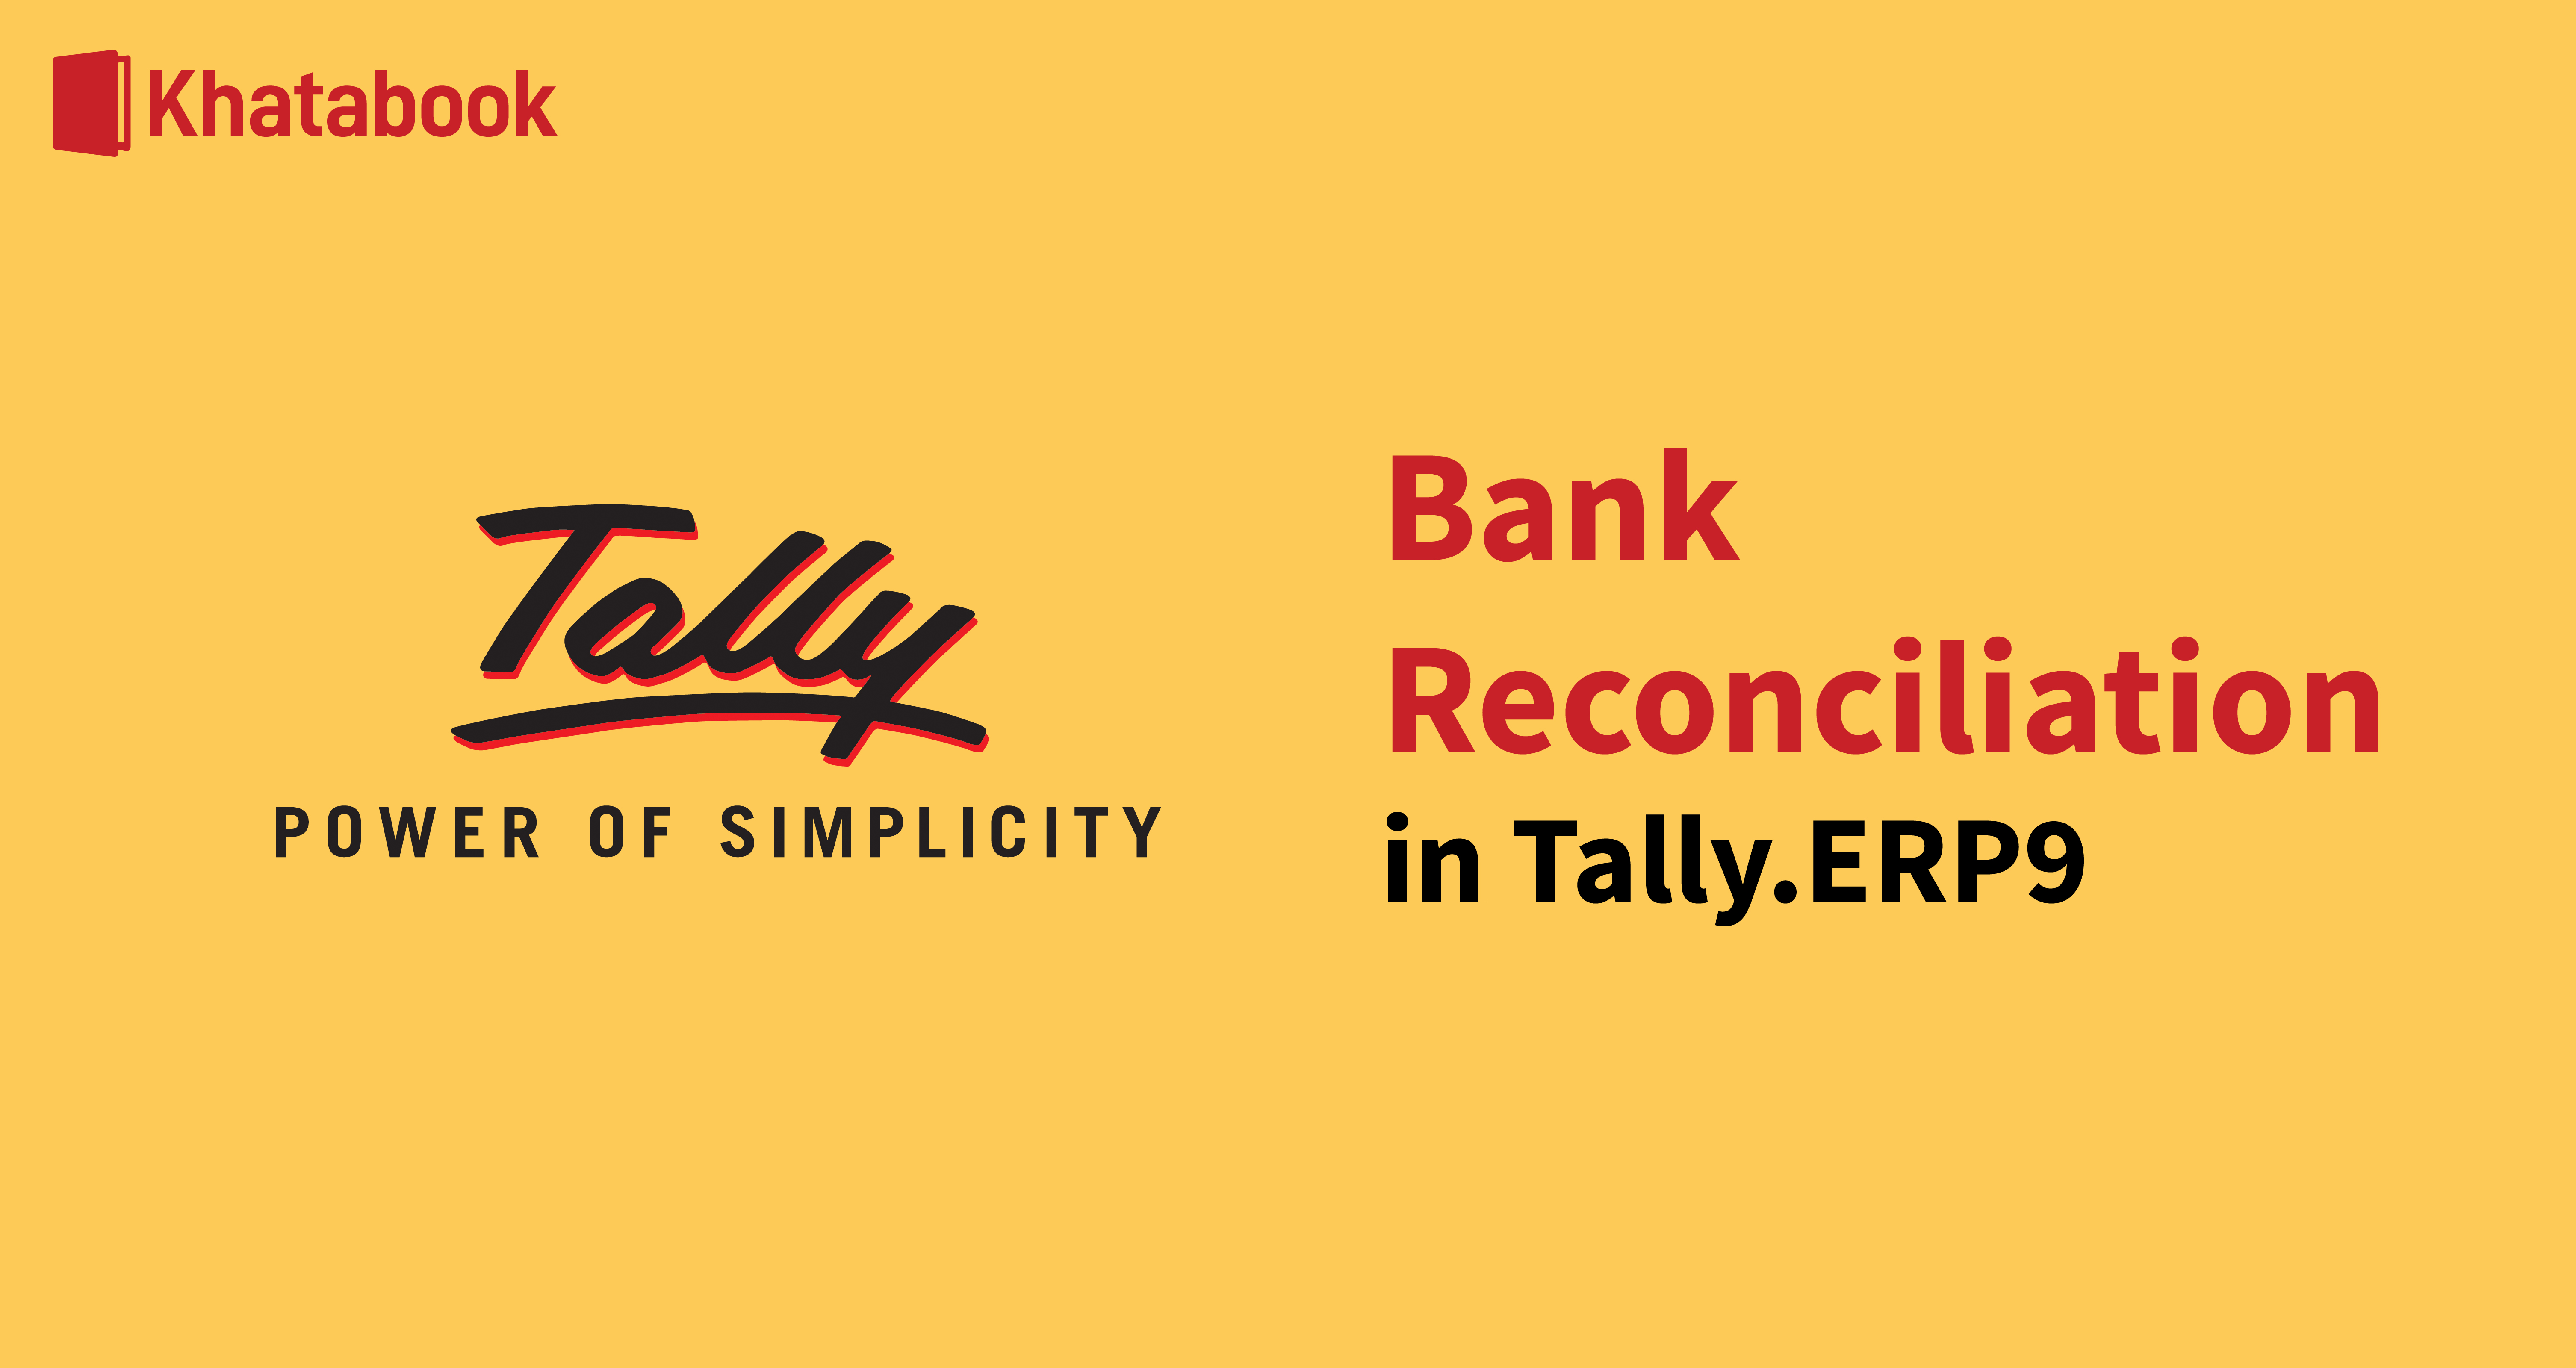 What is Bank Reconciliation in Tally.ERP9